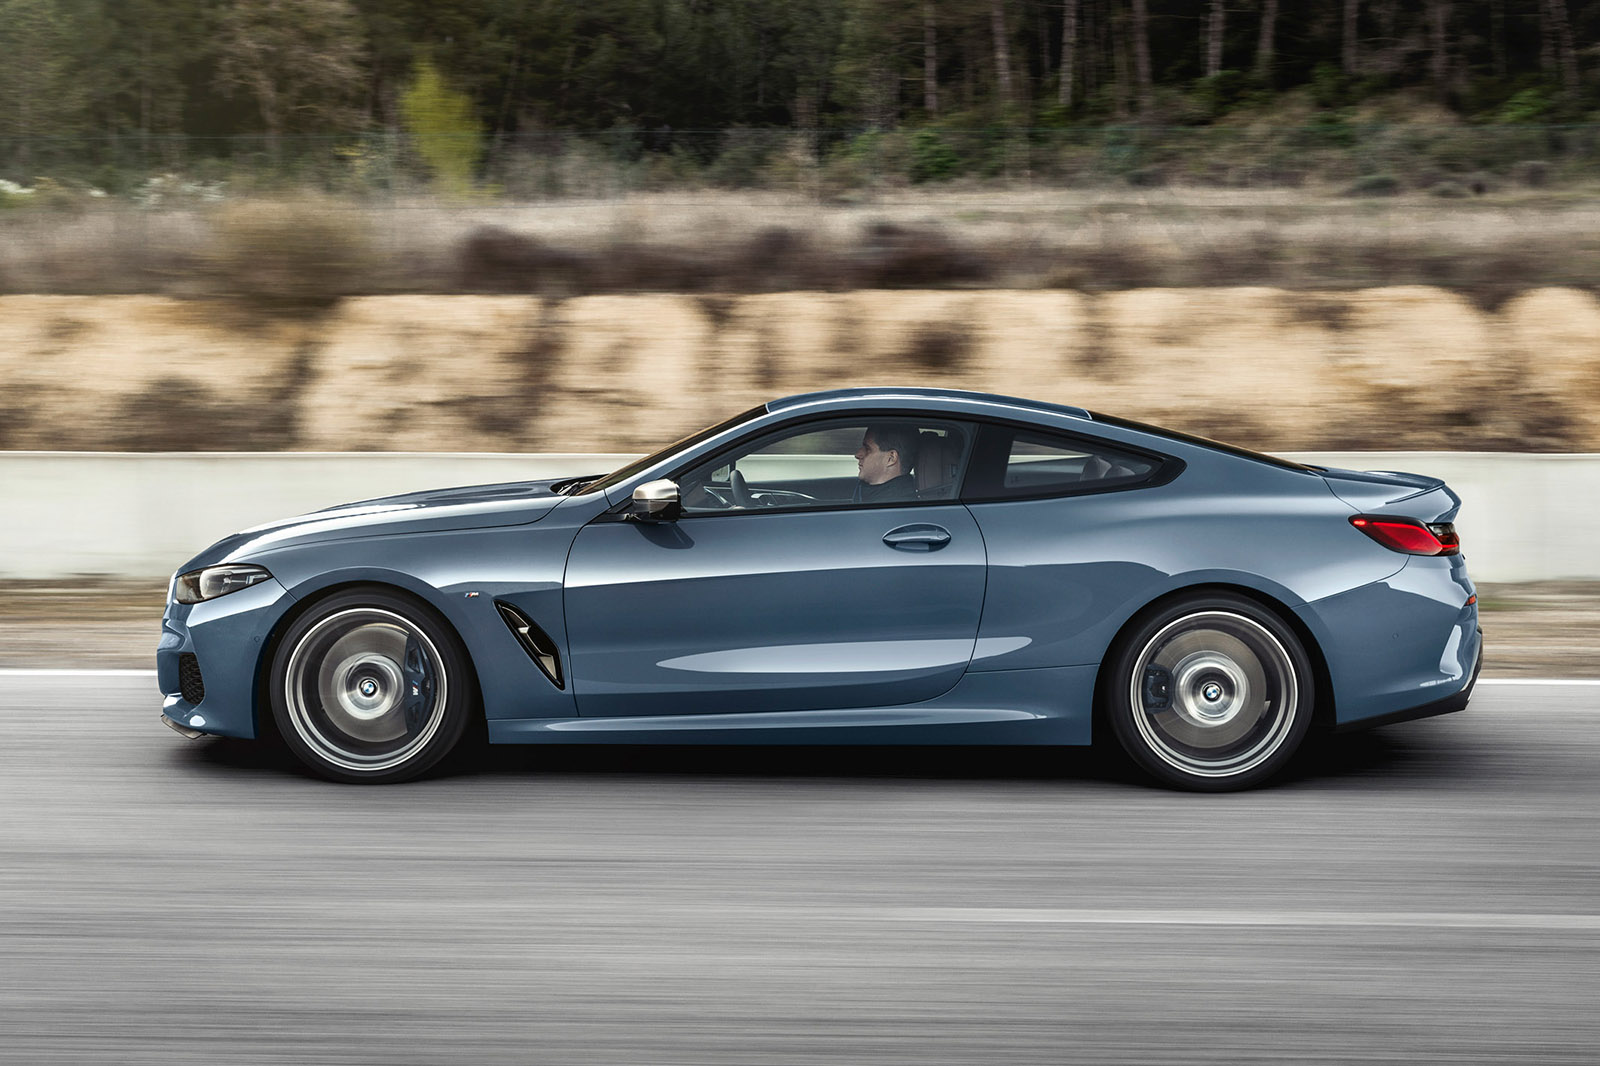 2018 Bmw 8 Series Lands At Goodwood Ahead Of November Sales Launch Autocar